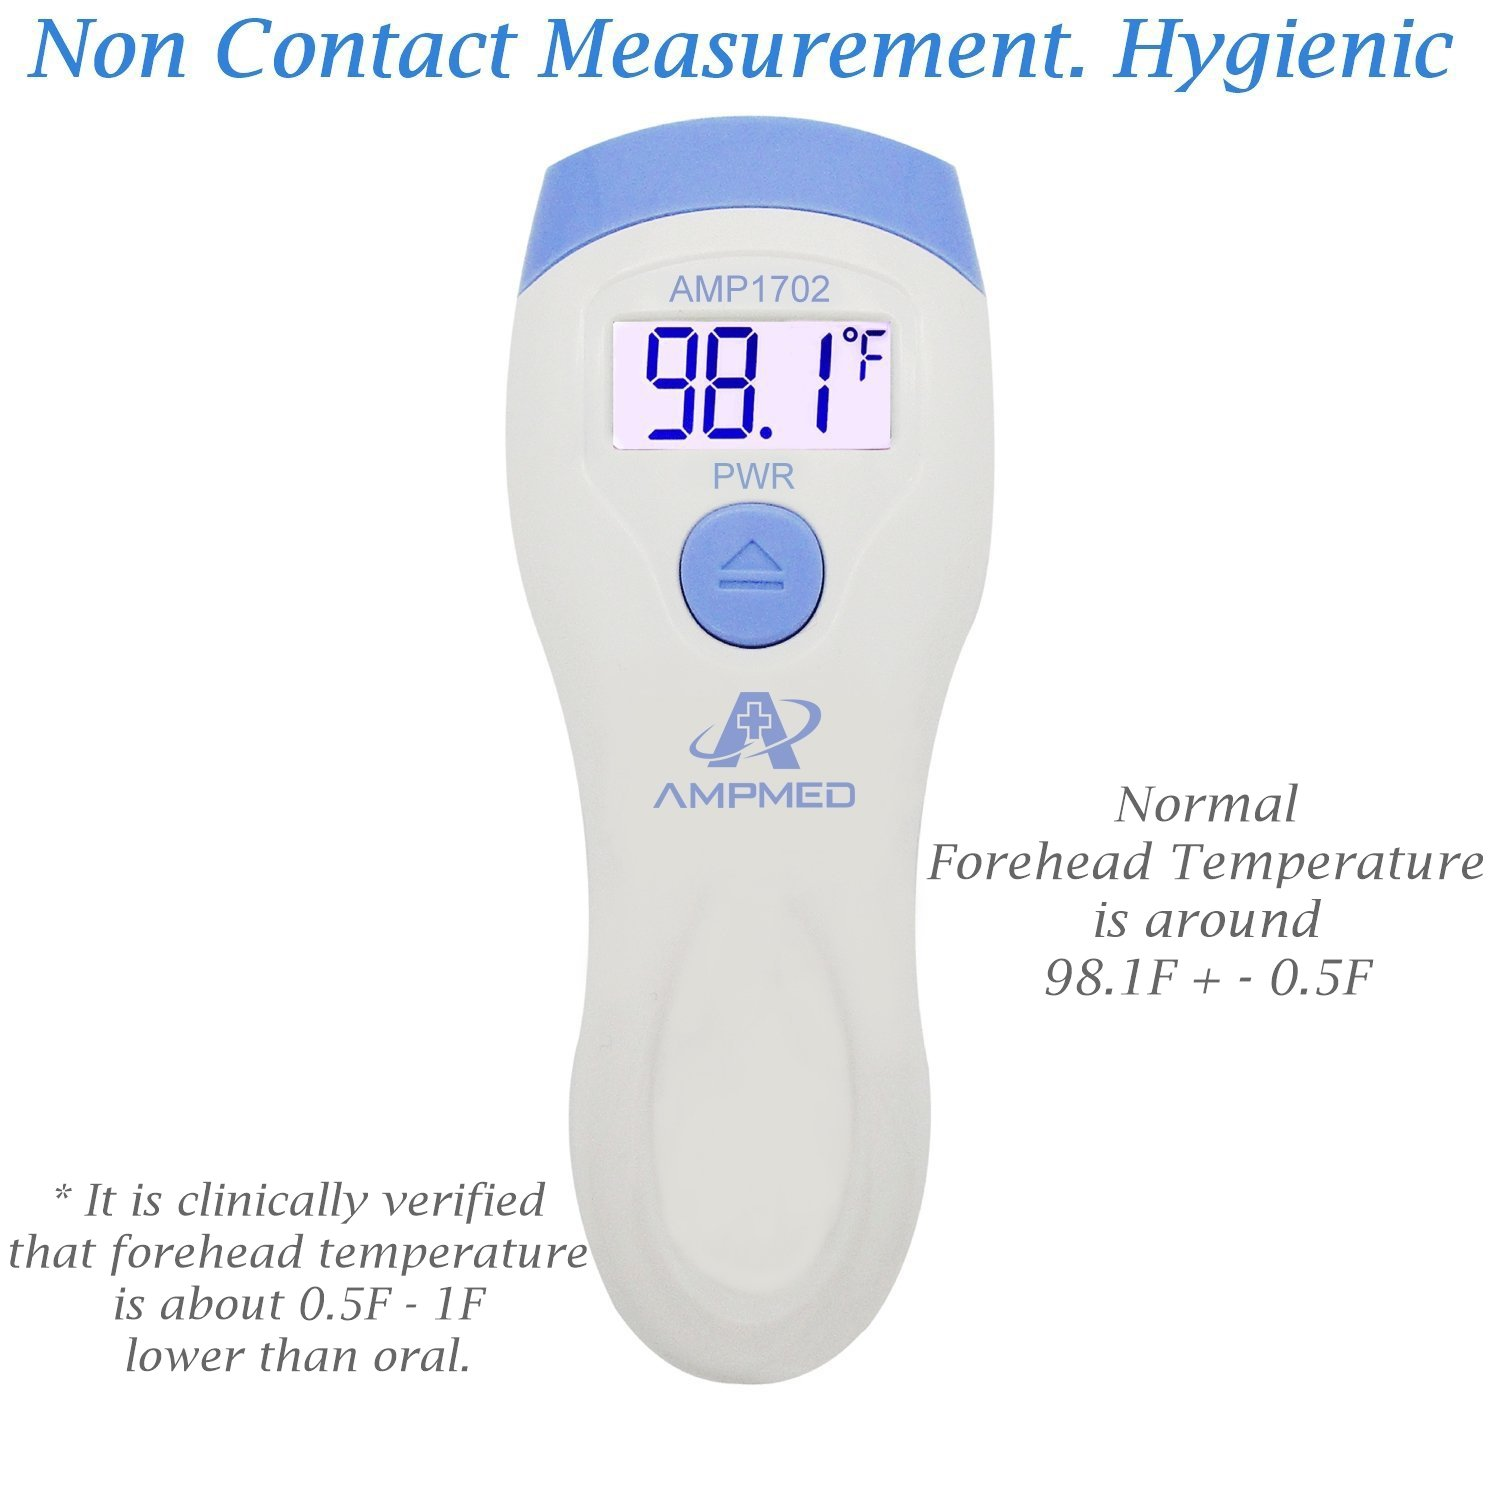 Amplim FDA Approved Medical Hospital Grade Non Contact Infrared Forehead Thermometer. Best Baby/Kid/Infant/Toddler/Child/Adult/Professional/Clinical Digital No Touch Travel Fever Thermometer. New 2018 by Amplim (Image #5)